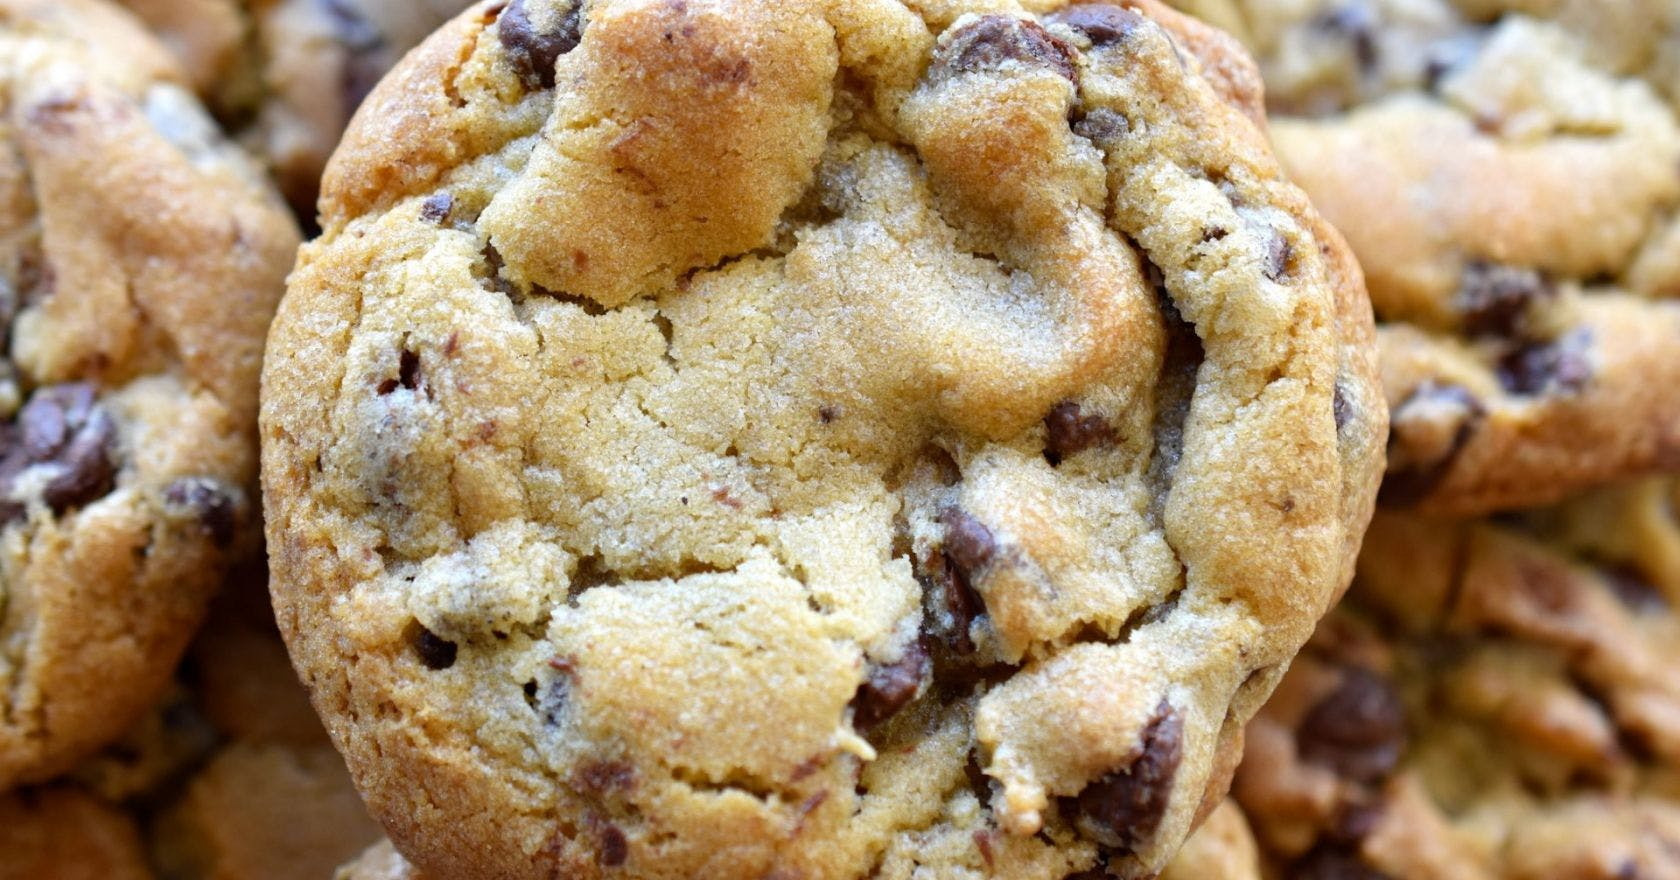 How to make vegan chocolate chip cookies according to one of London's coolest bakers